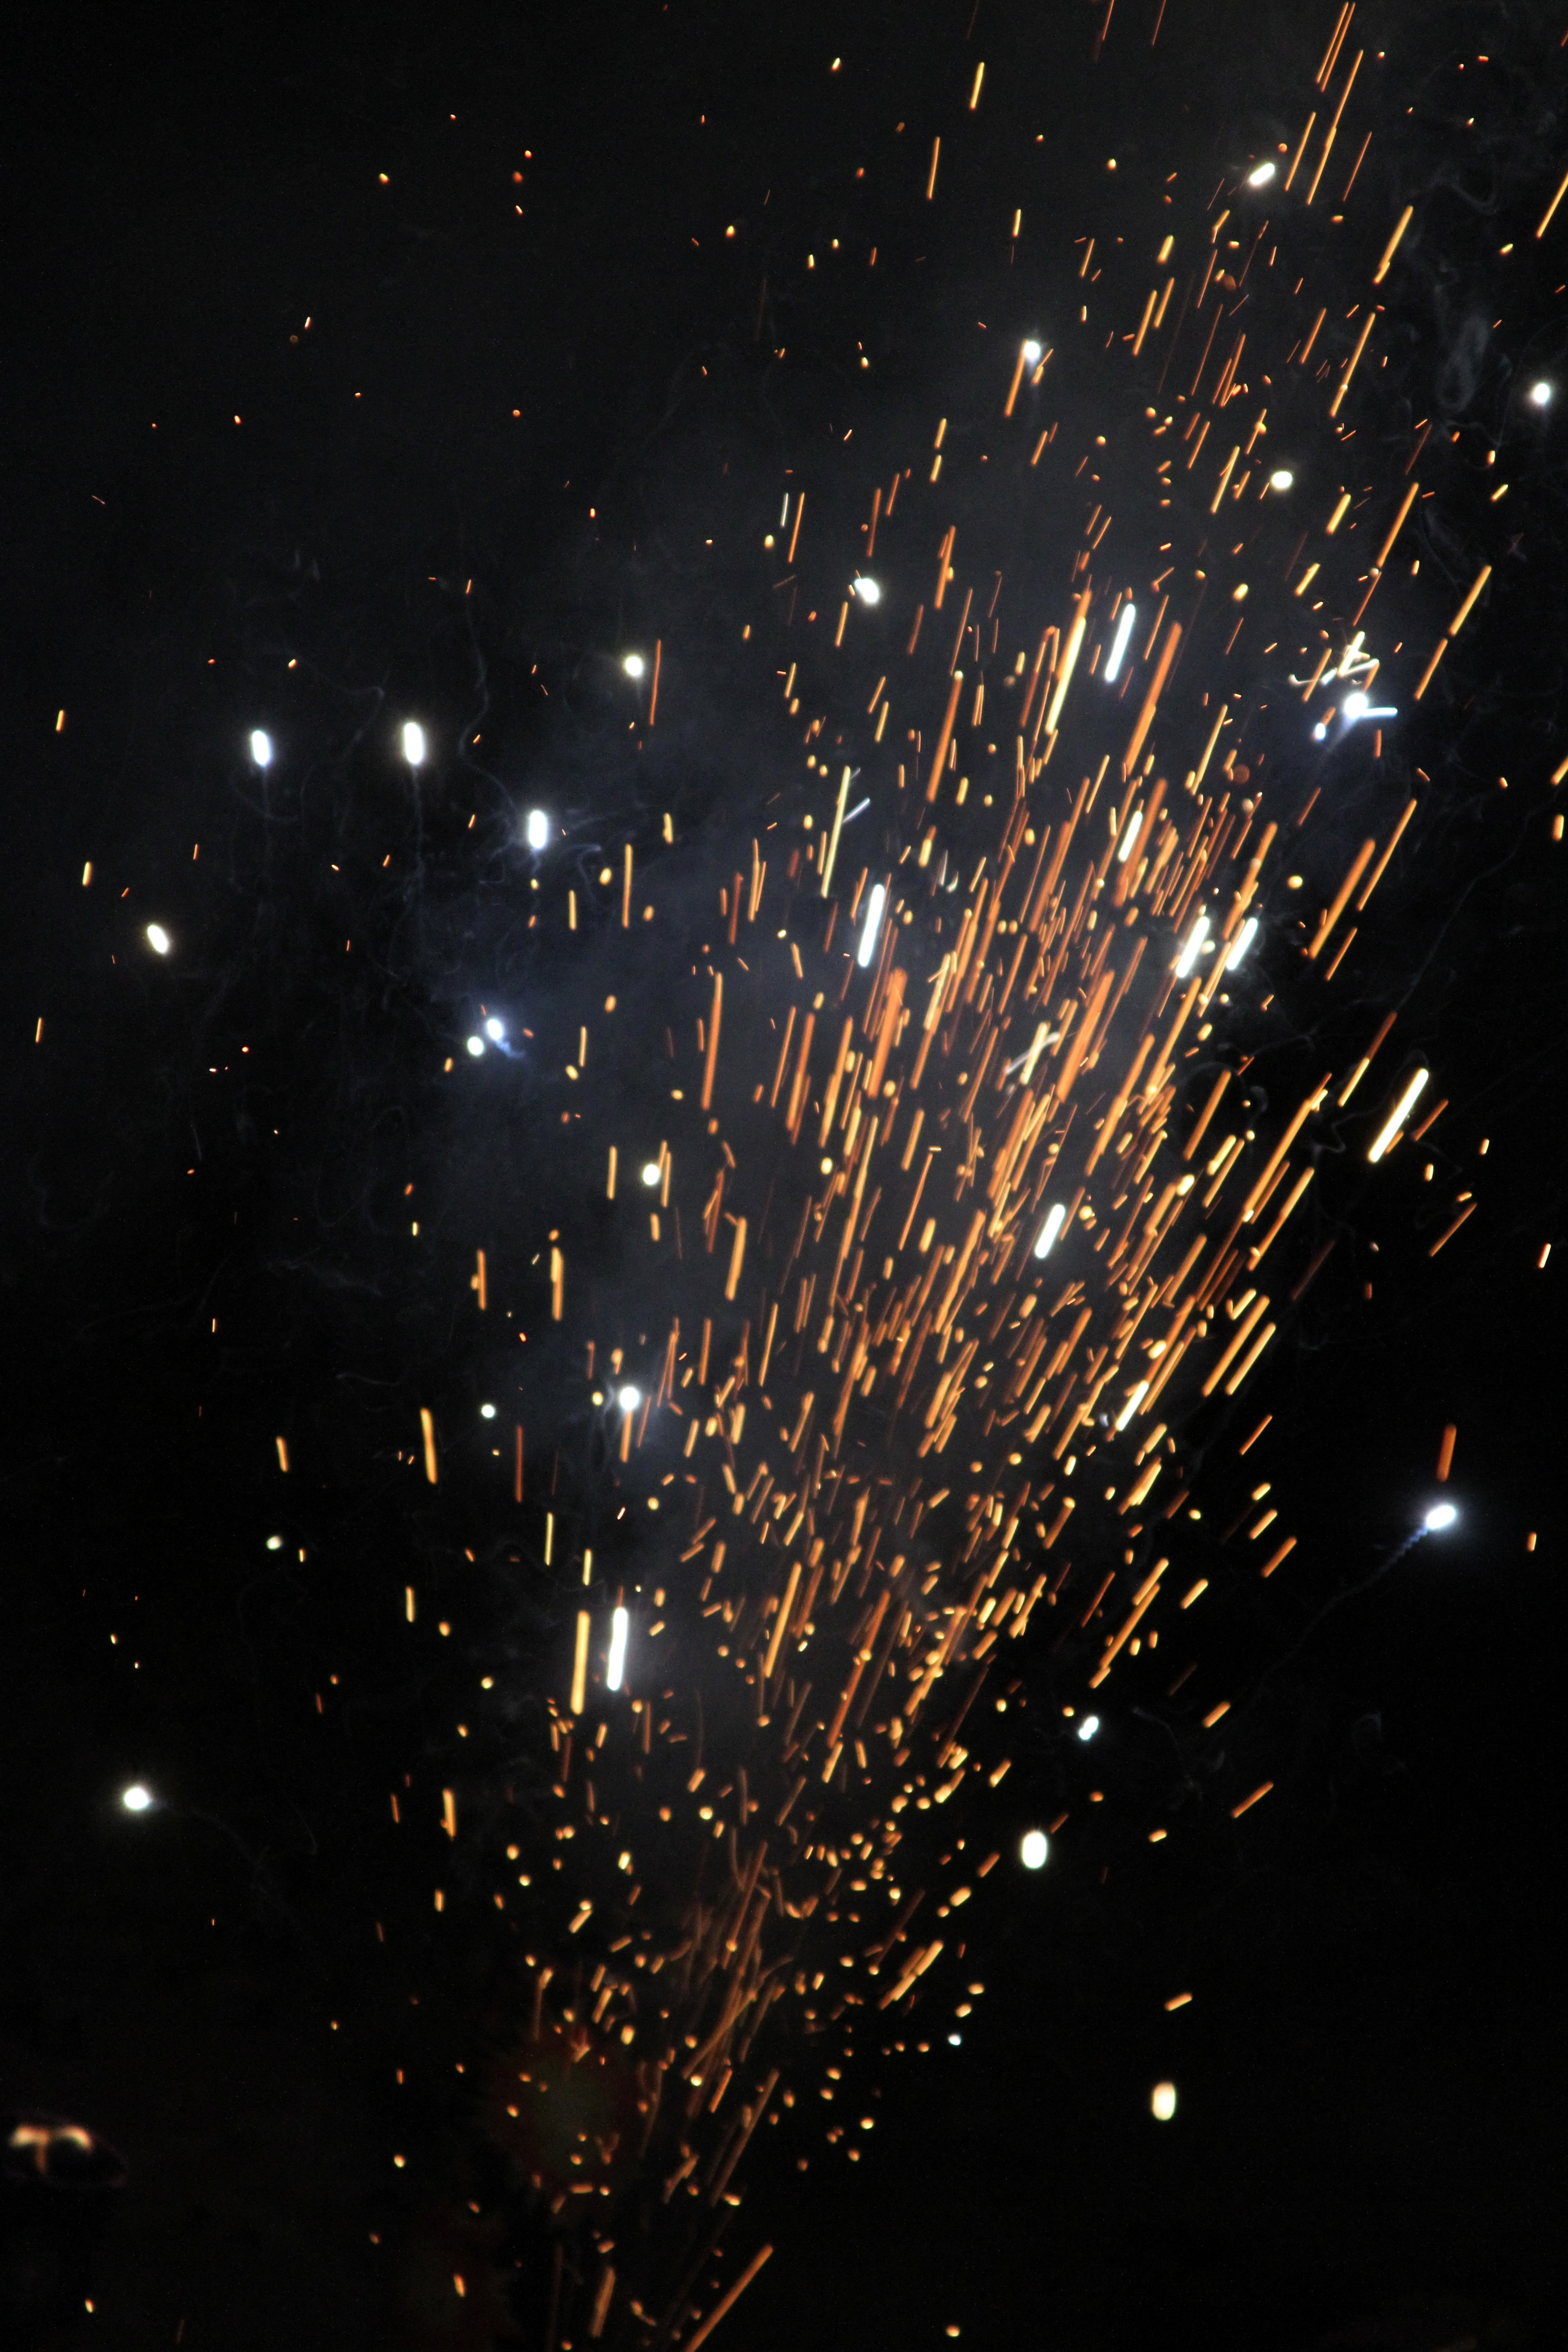 Sparks by emodrazo on deviantart - Add spark wall art picture lights ...